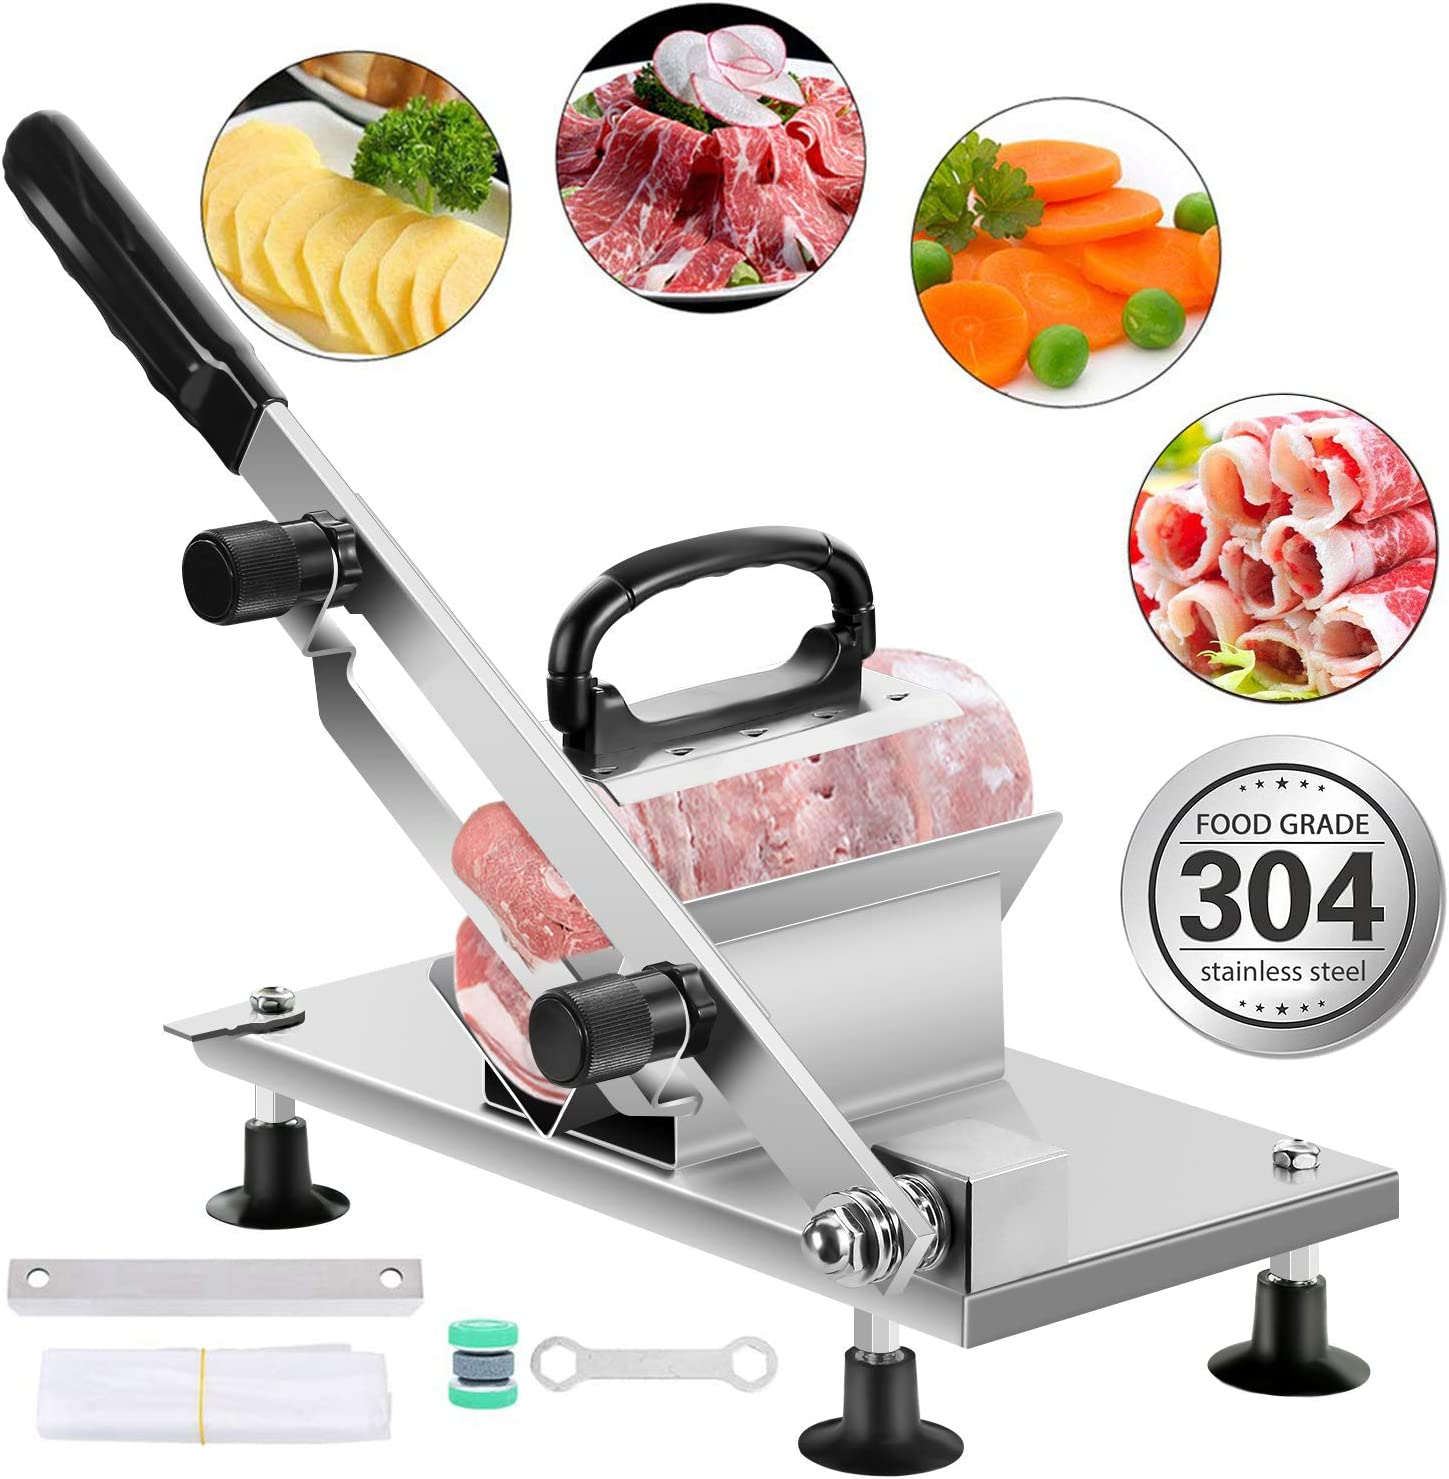 aingycy Frozen Meat Slicer Hand Slicing Machine Stainless Steel Frozen Beef Mutton Bacon Meat cutter Vegetable Fruit meat cleaver for Home Kitchen and Commercial Use (Sliver)